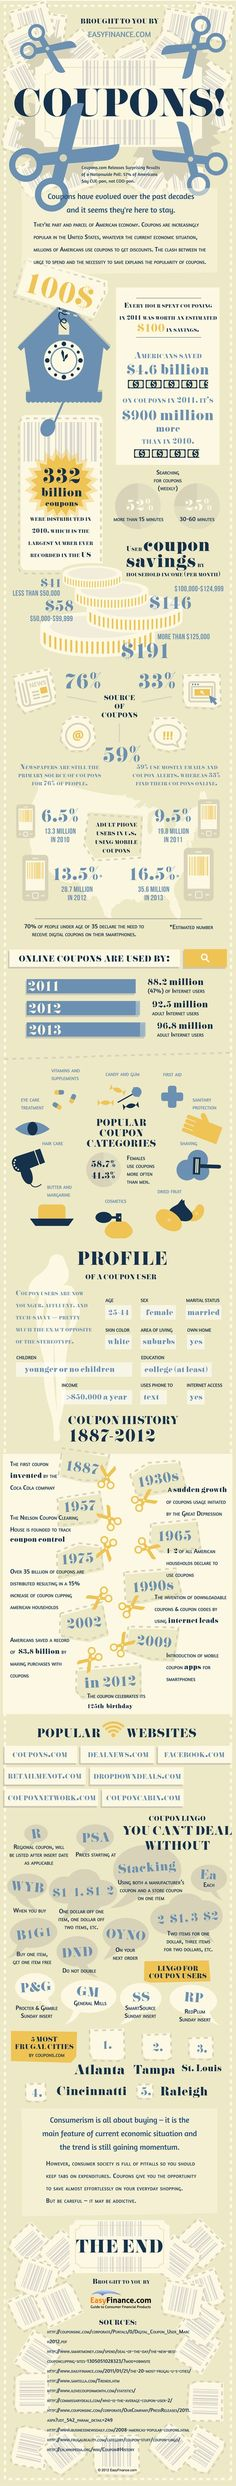 Coupons #Infographic